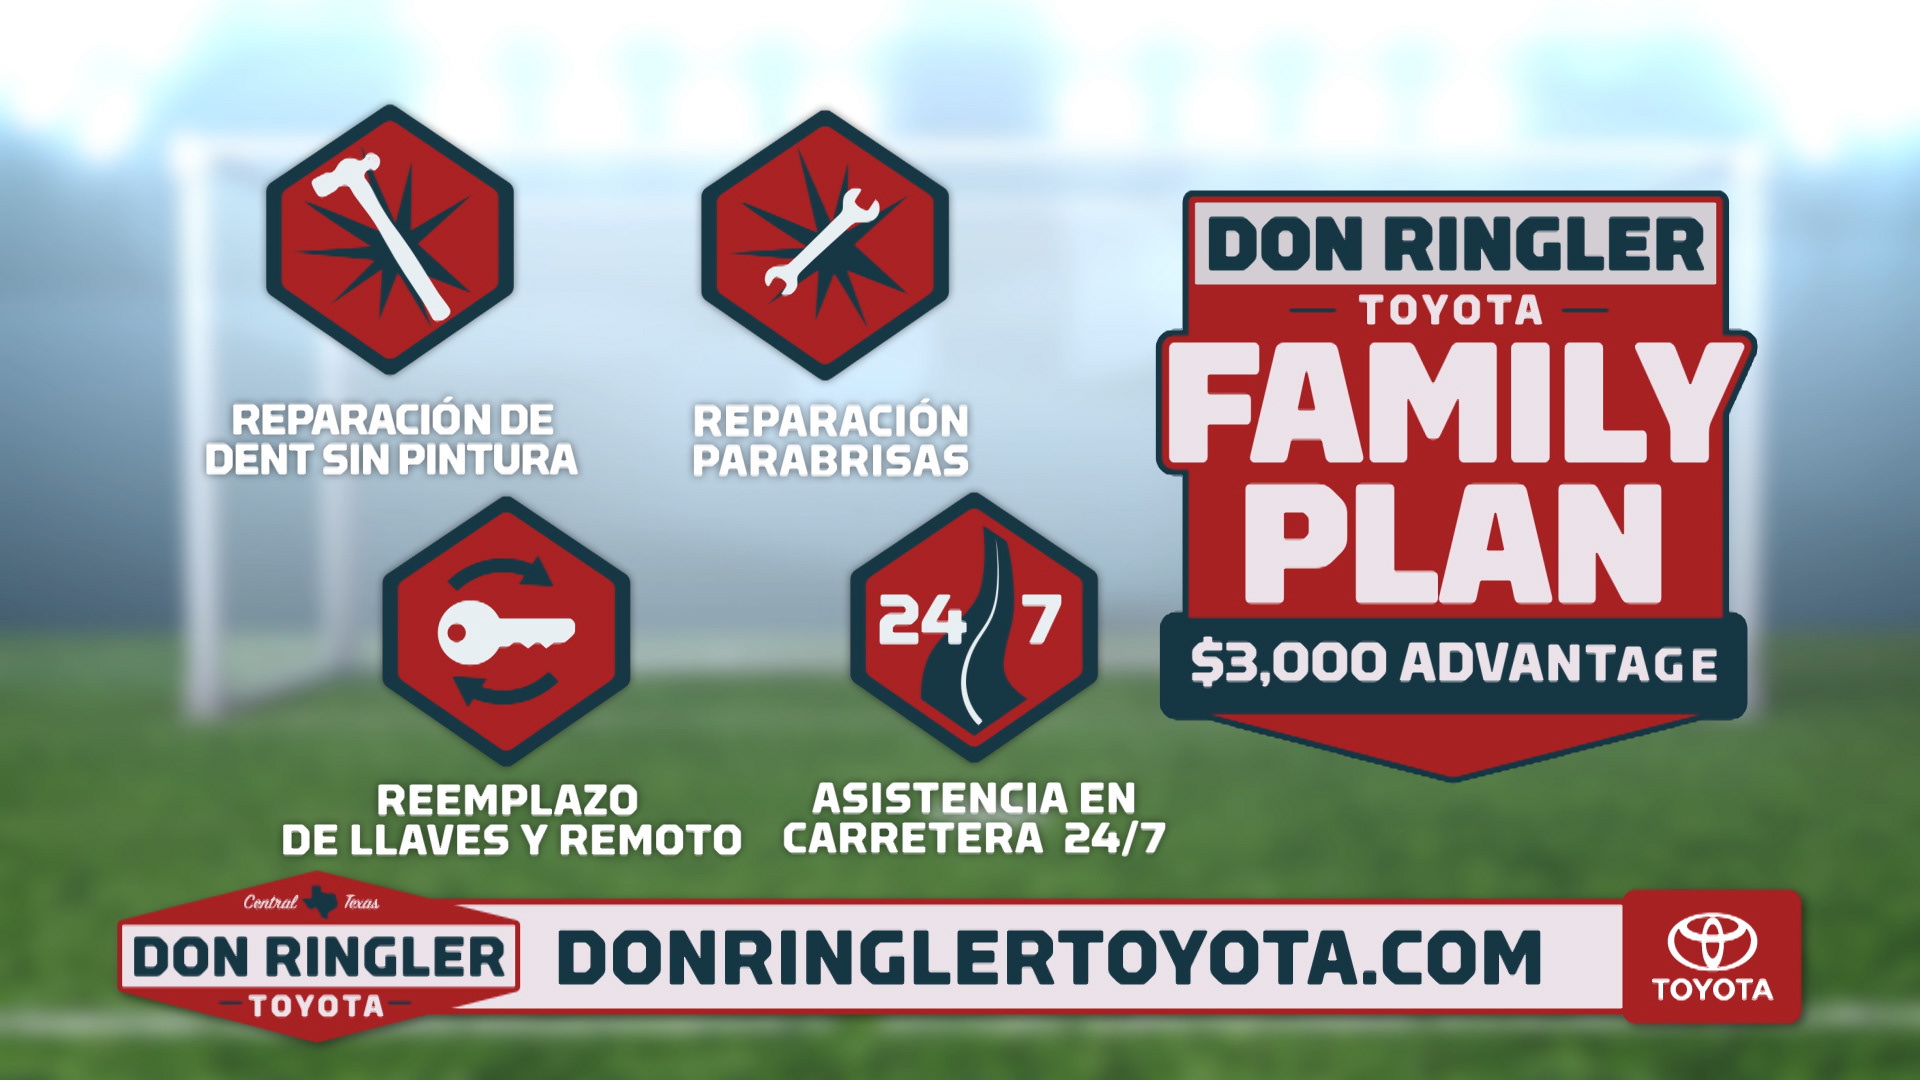 Don Ringler Toyota World Cup